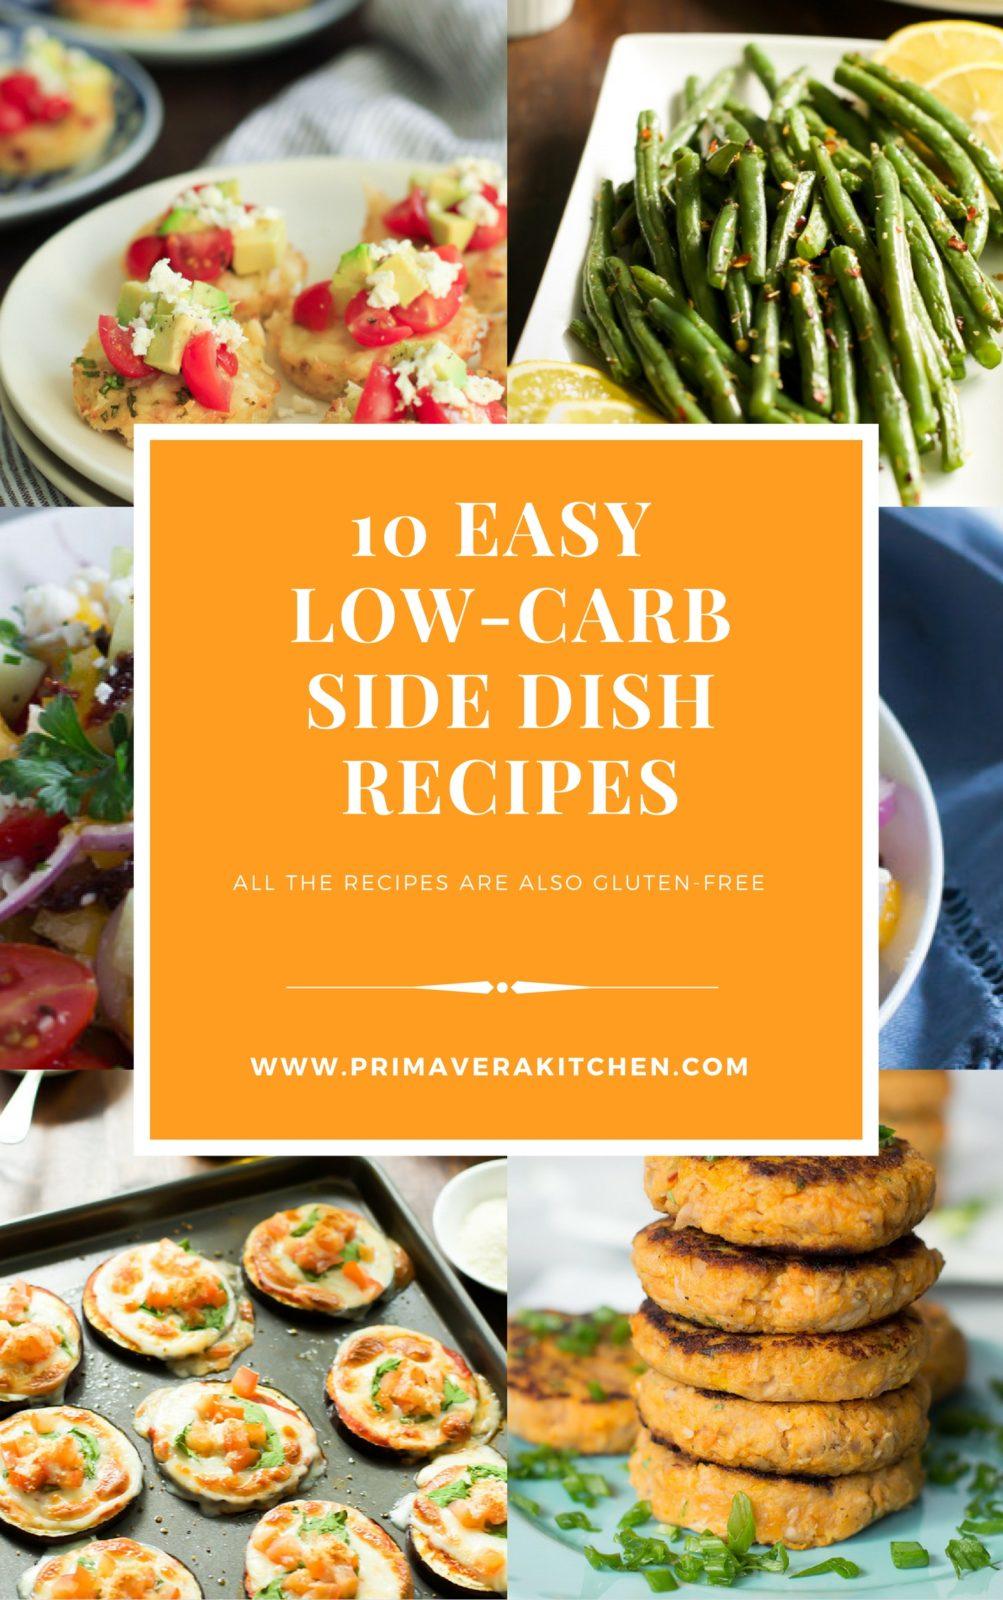 1o easy low-carb side dish recipes - Do you end up eating the same boring side dishes dinner after dinner? What about changing things a little with these 10 Easy Low-Carb Side Dish Recipes? You will love them!